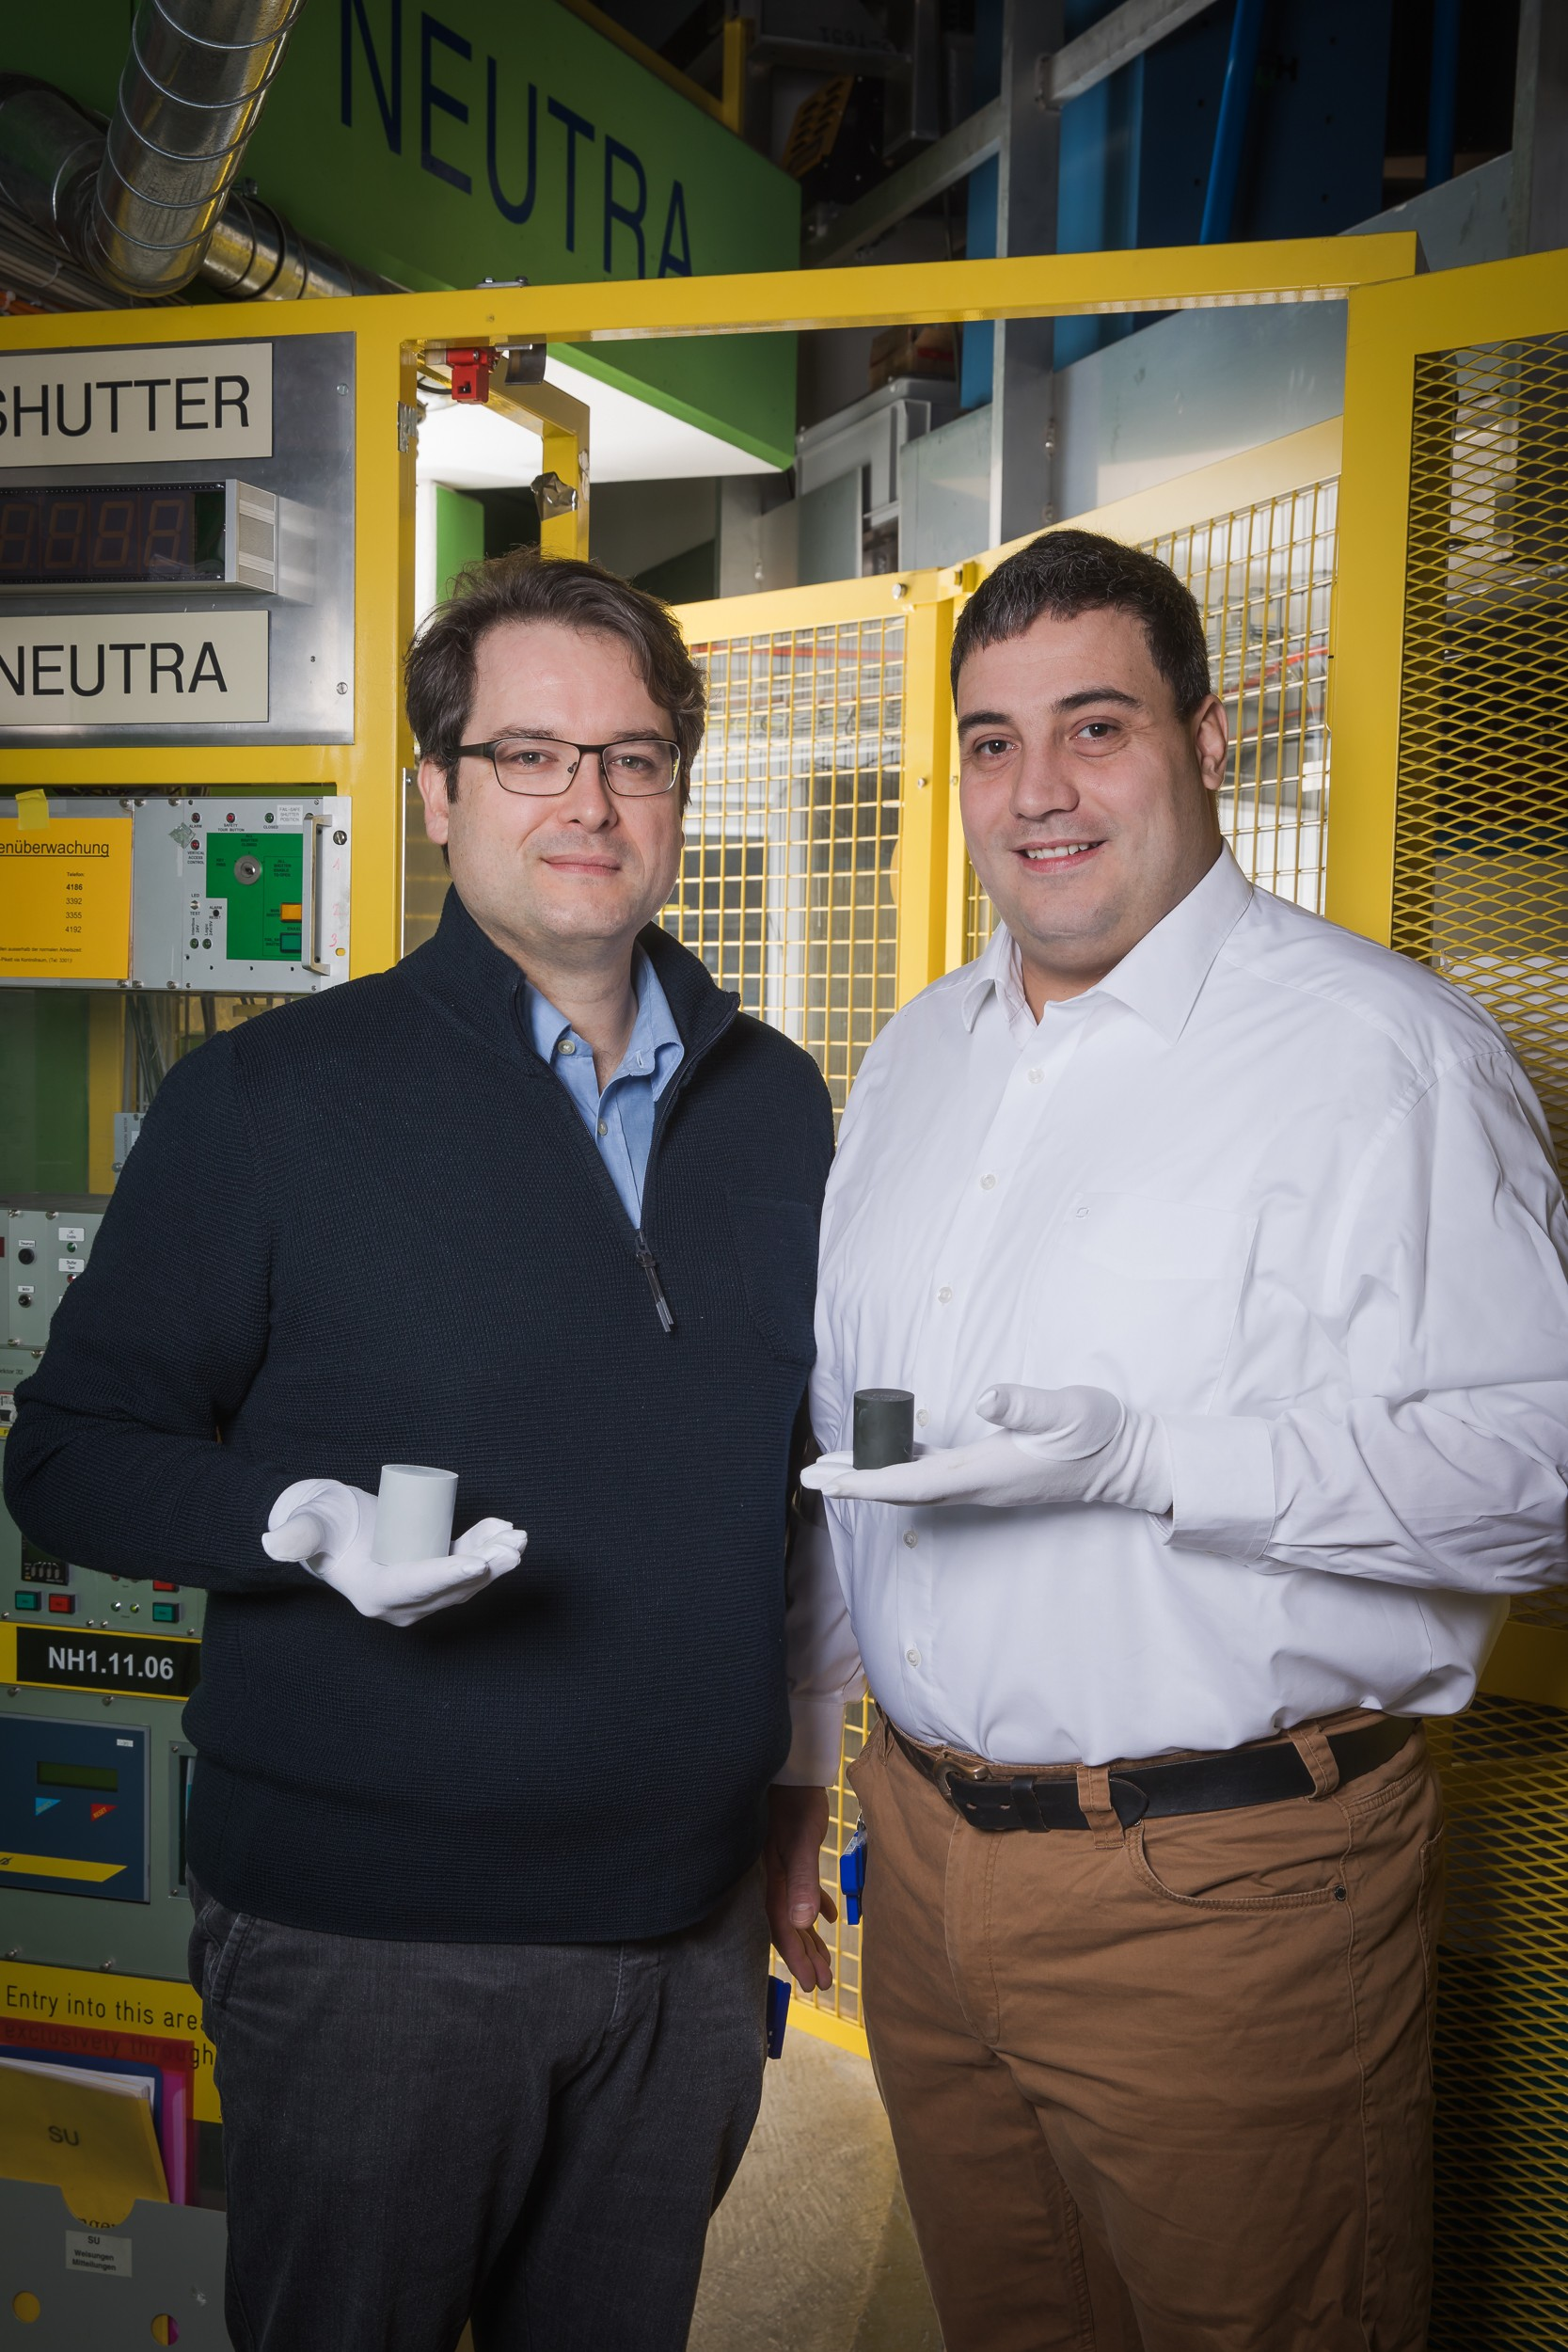 PSI researchers David Mannes (left) and Christian Grünzweig in front of the experiment station NEUTRA. This is where they produced the neutron images of ceramic components made by the technology company ABB. Each of the researchers is holding one of the different types of these ceramic varistors: the light-coloured one on the left has not been fired yet; the dark one on the right already has. (Photo: Paul Scherrer Institute/Mahir Dzambegovic)